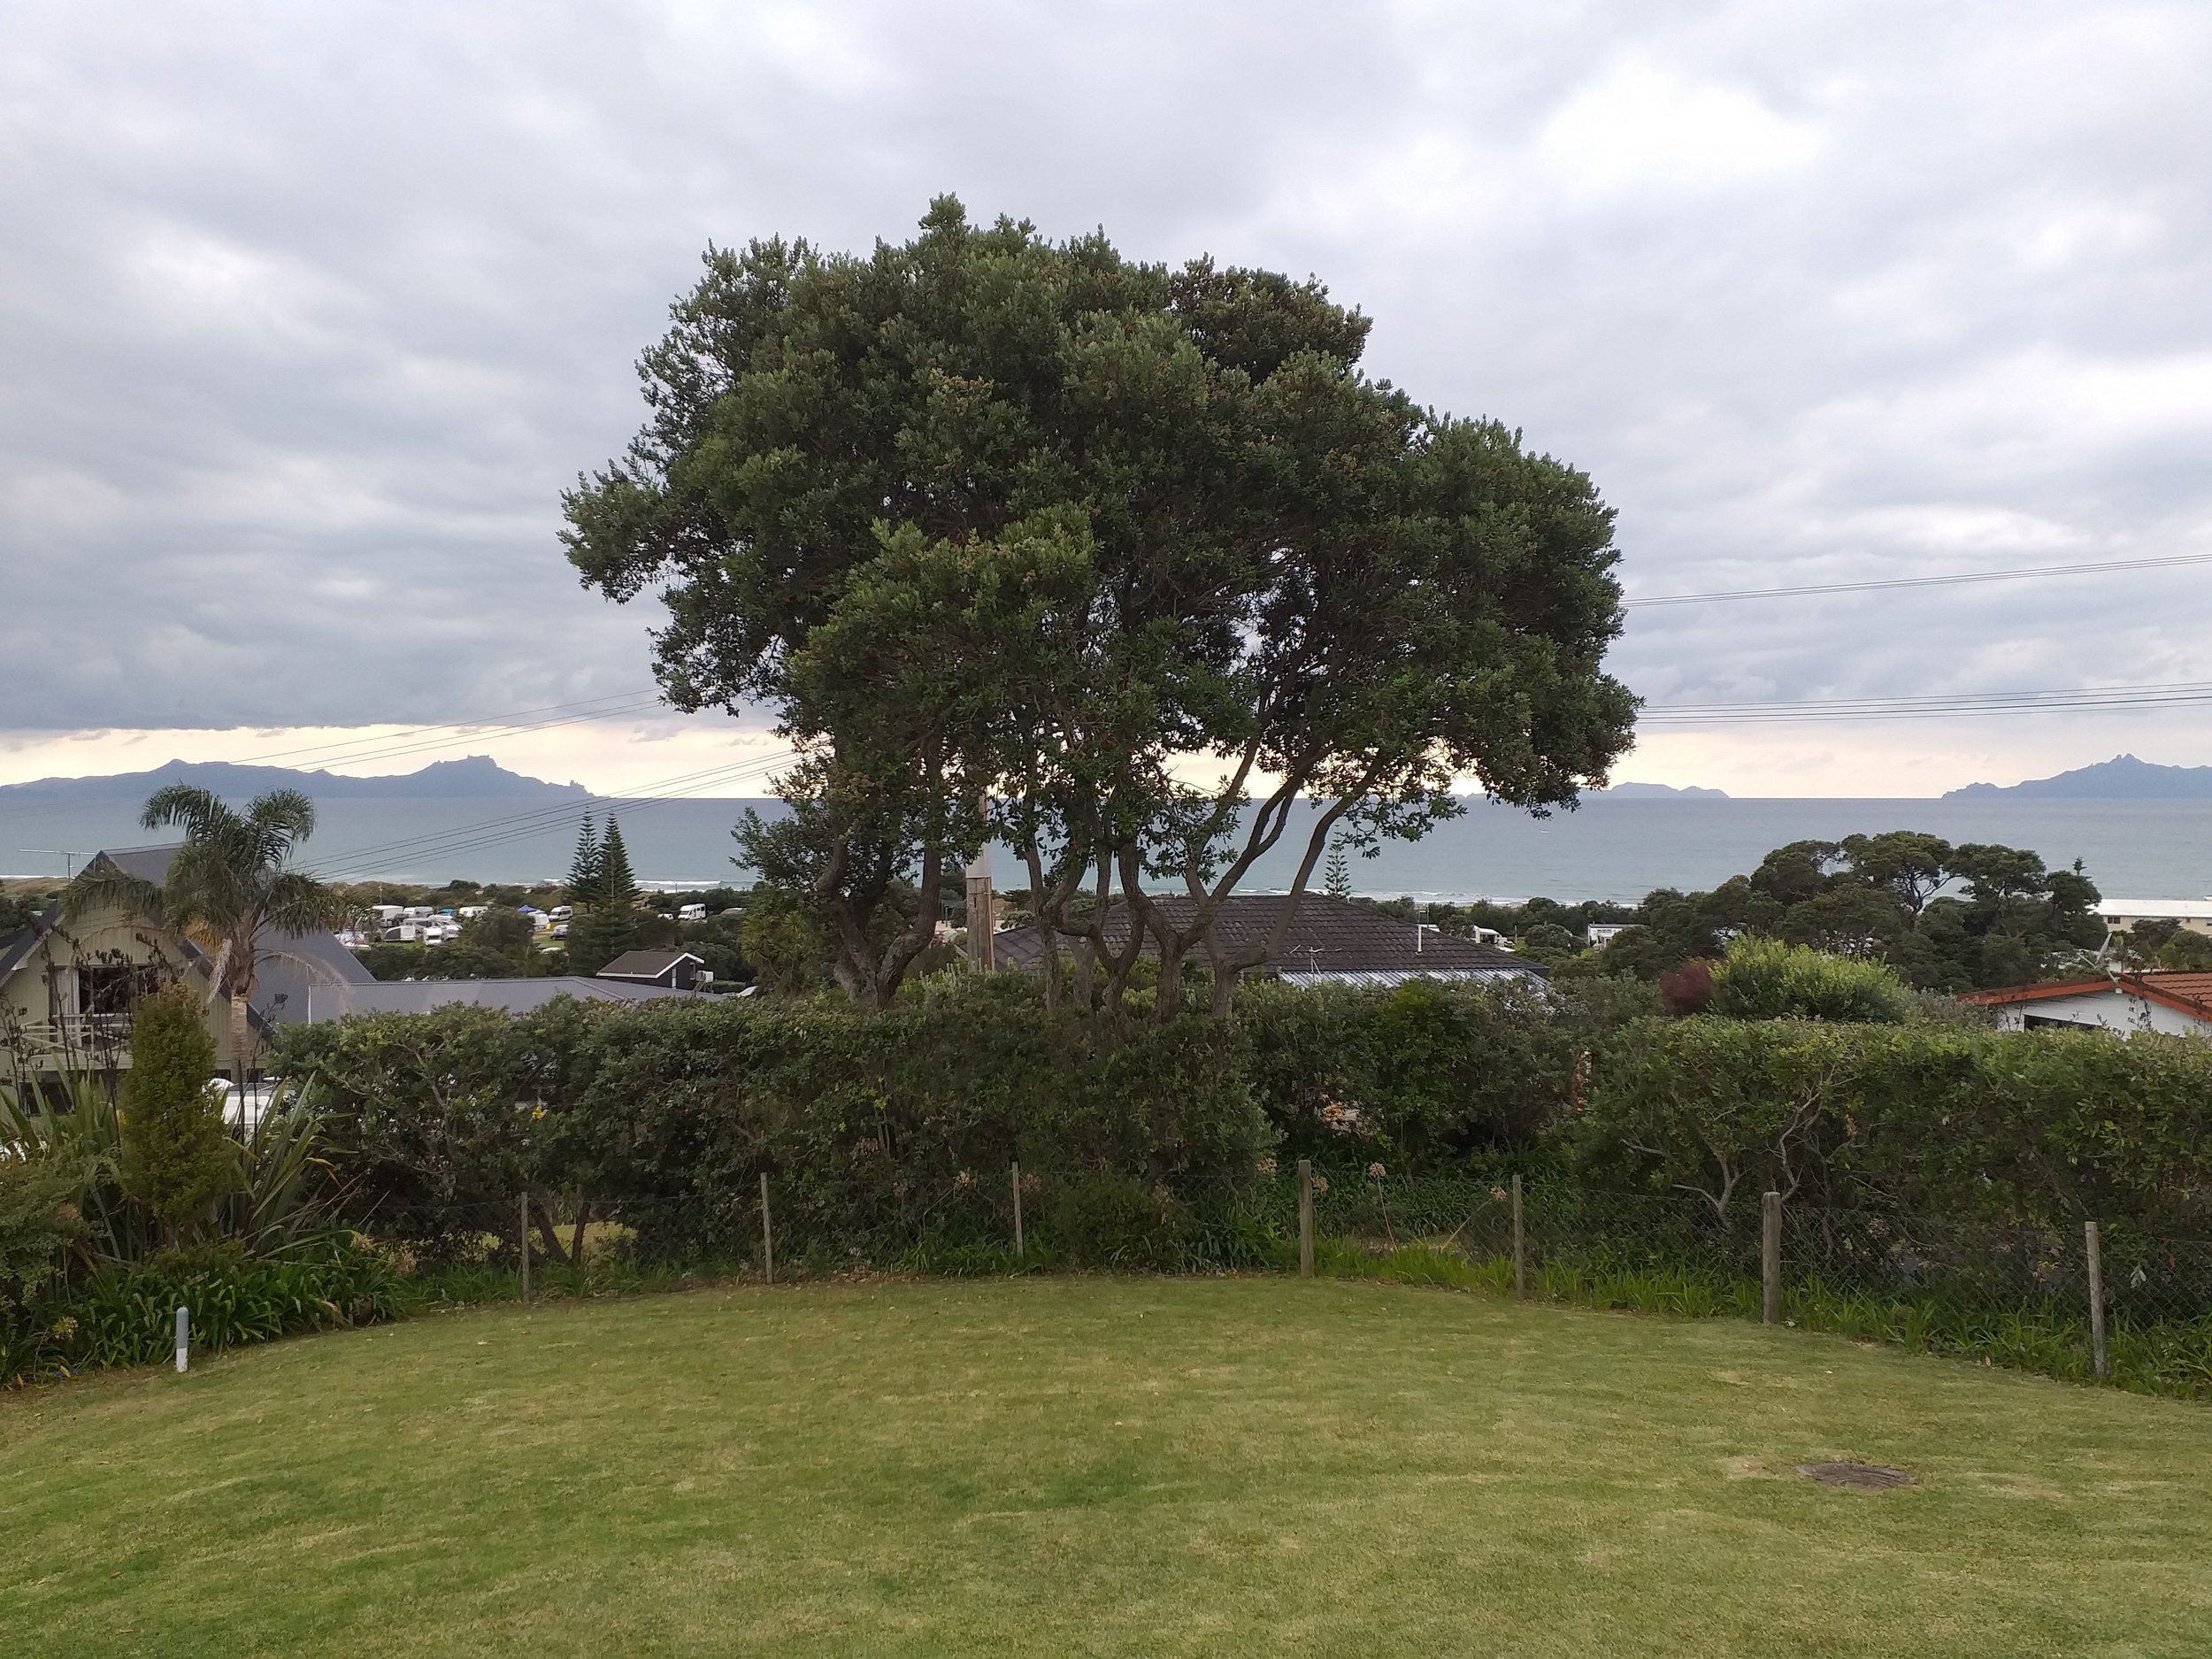 View of horizon obscured by Pohutakawa tree